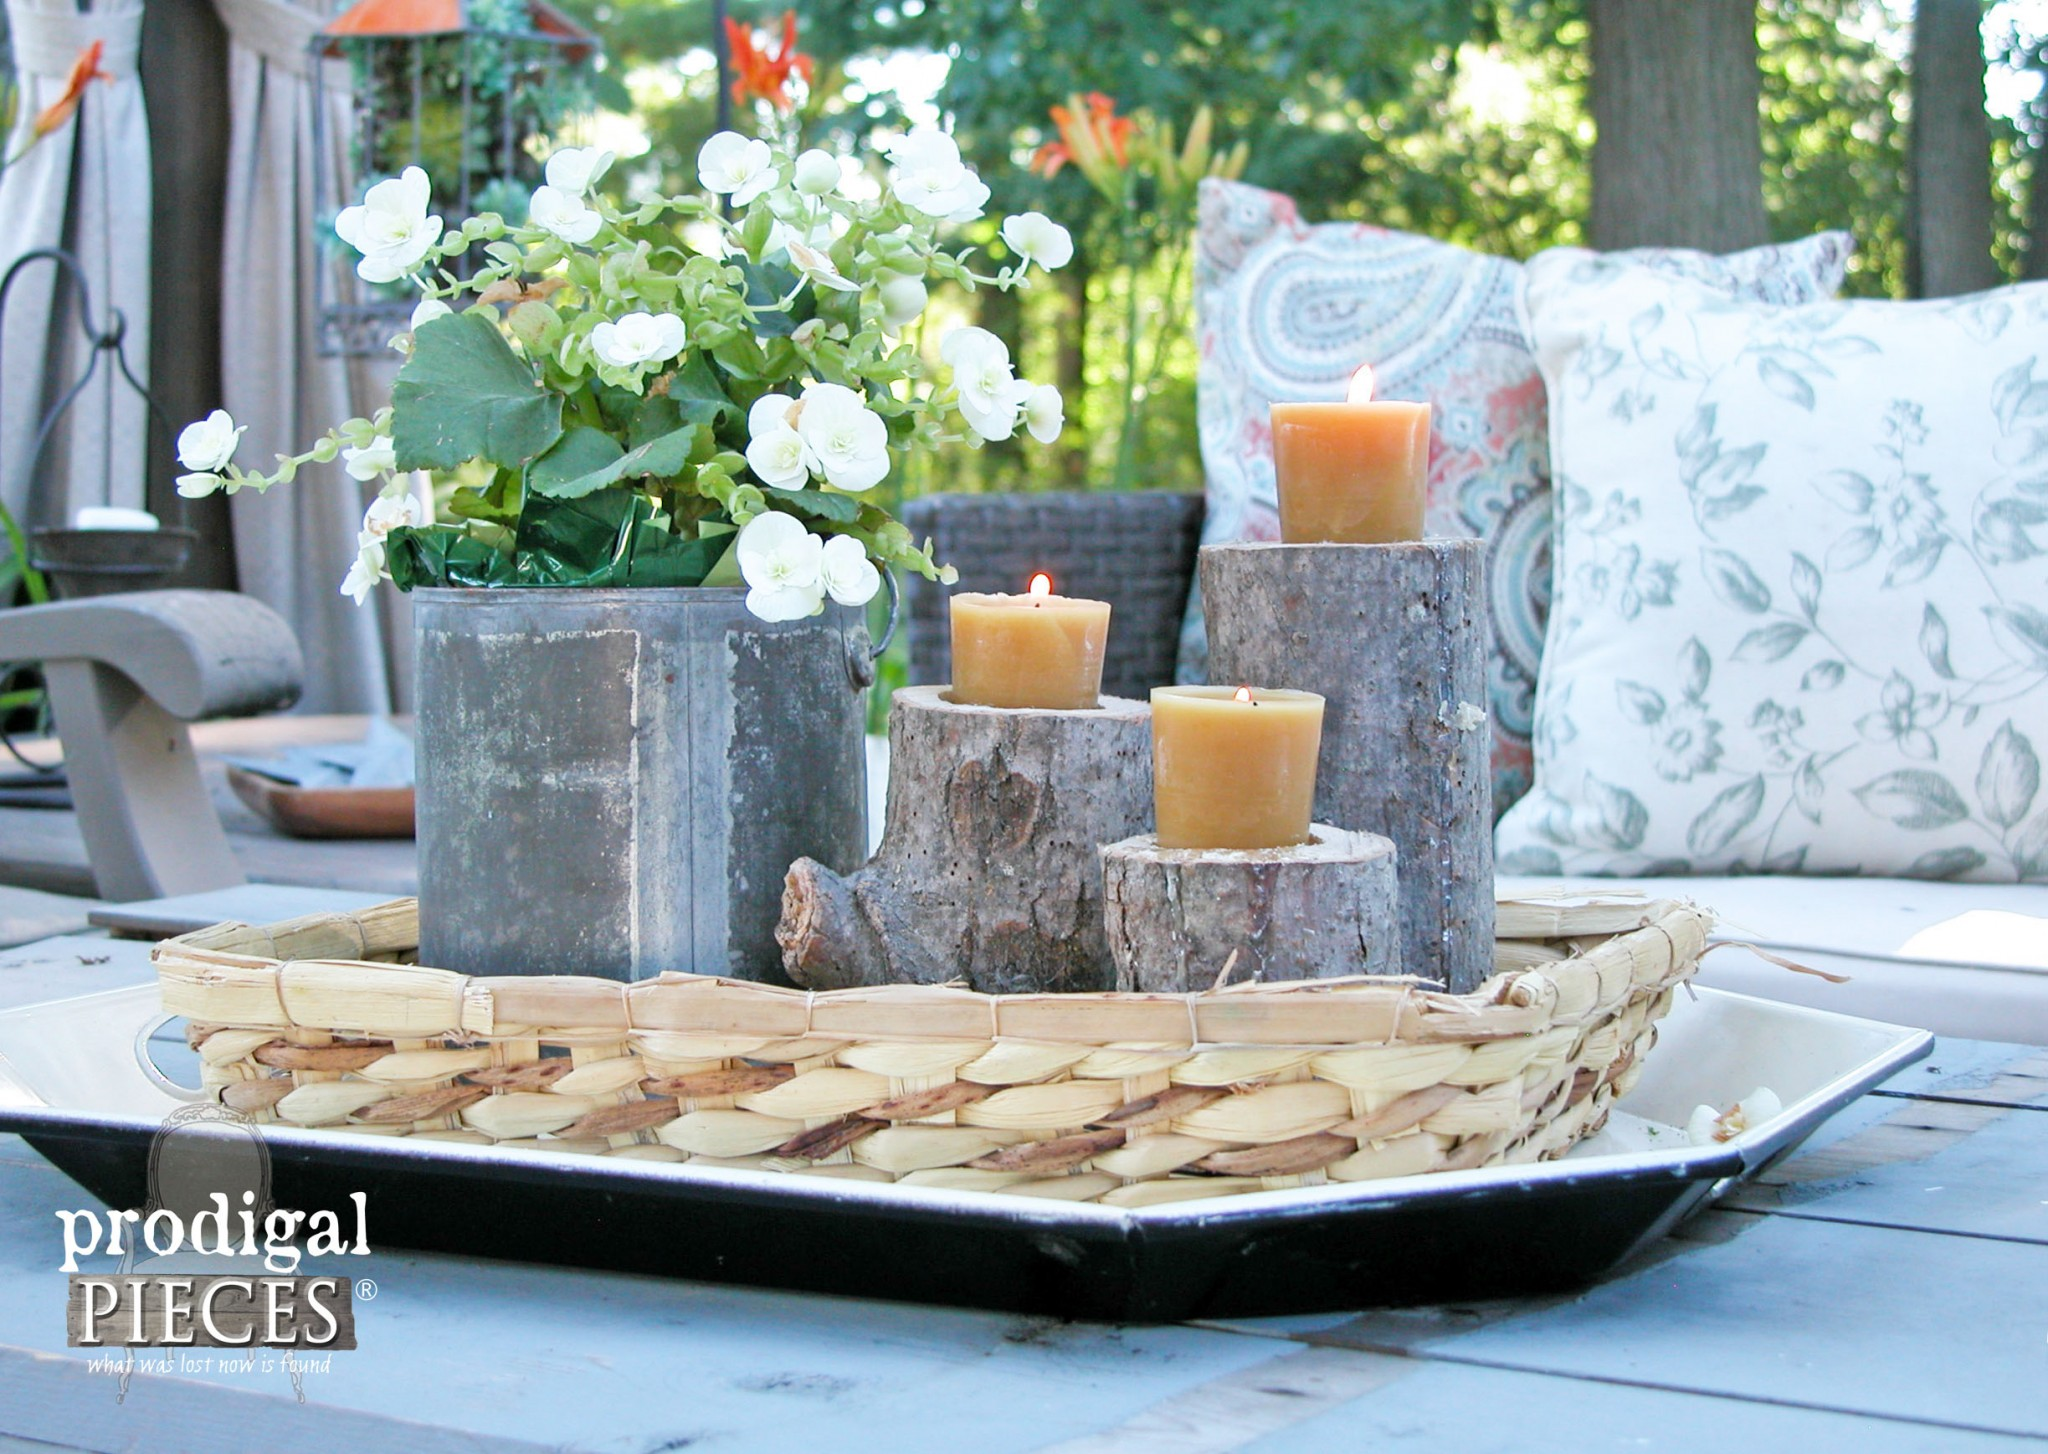 DIY Log Candlesticks on Outdoor Patio Table by Prodigal Pieces | www.prodigalpieces.com